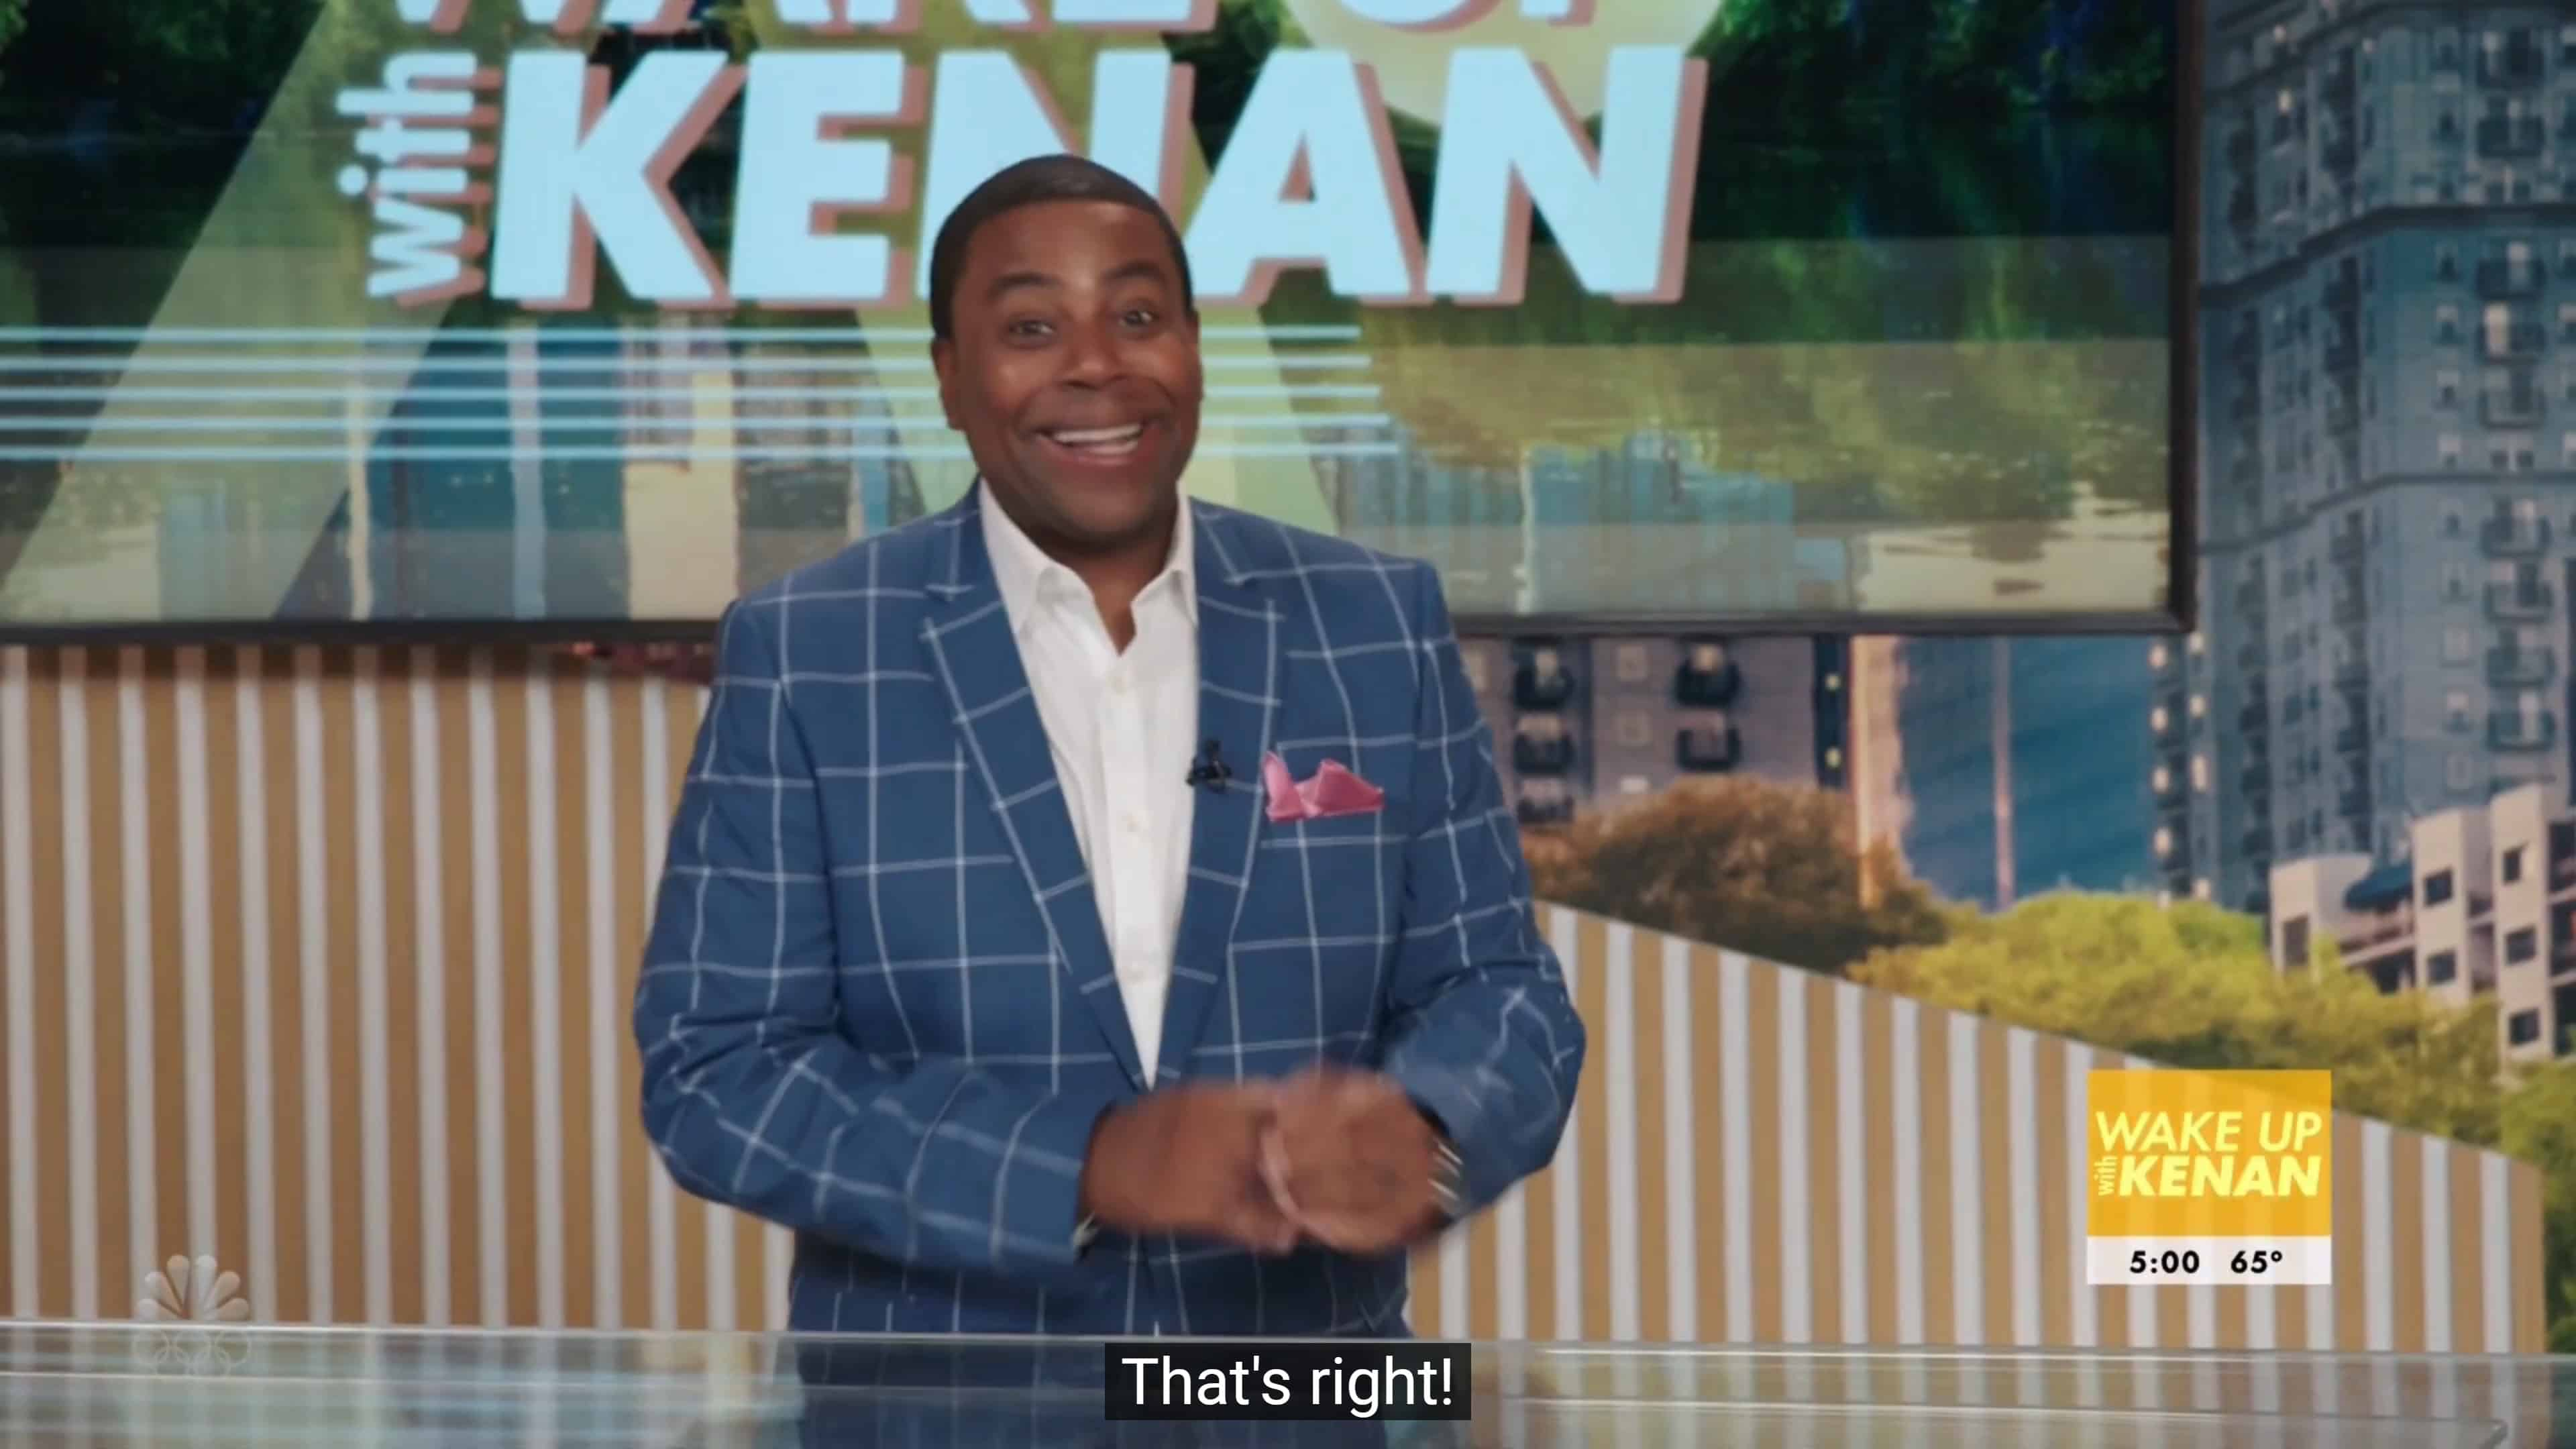 Kenan (Kenan Thompson) starting his show